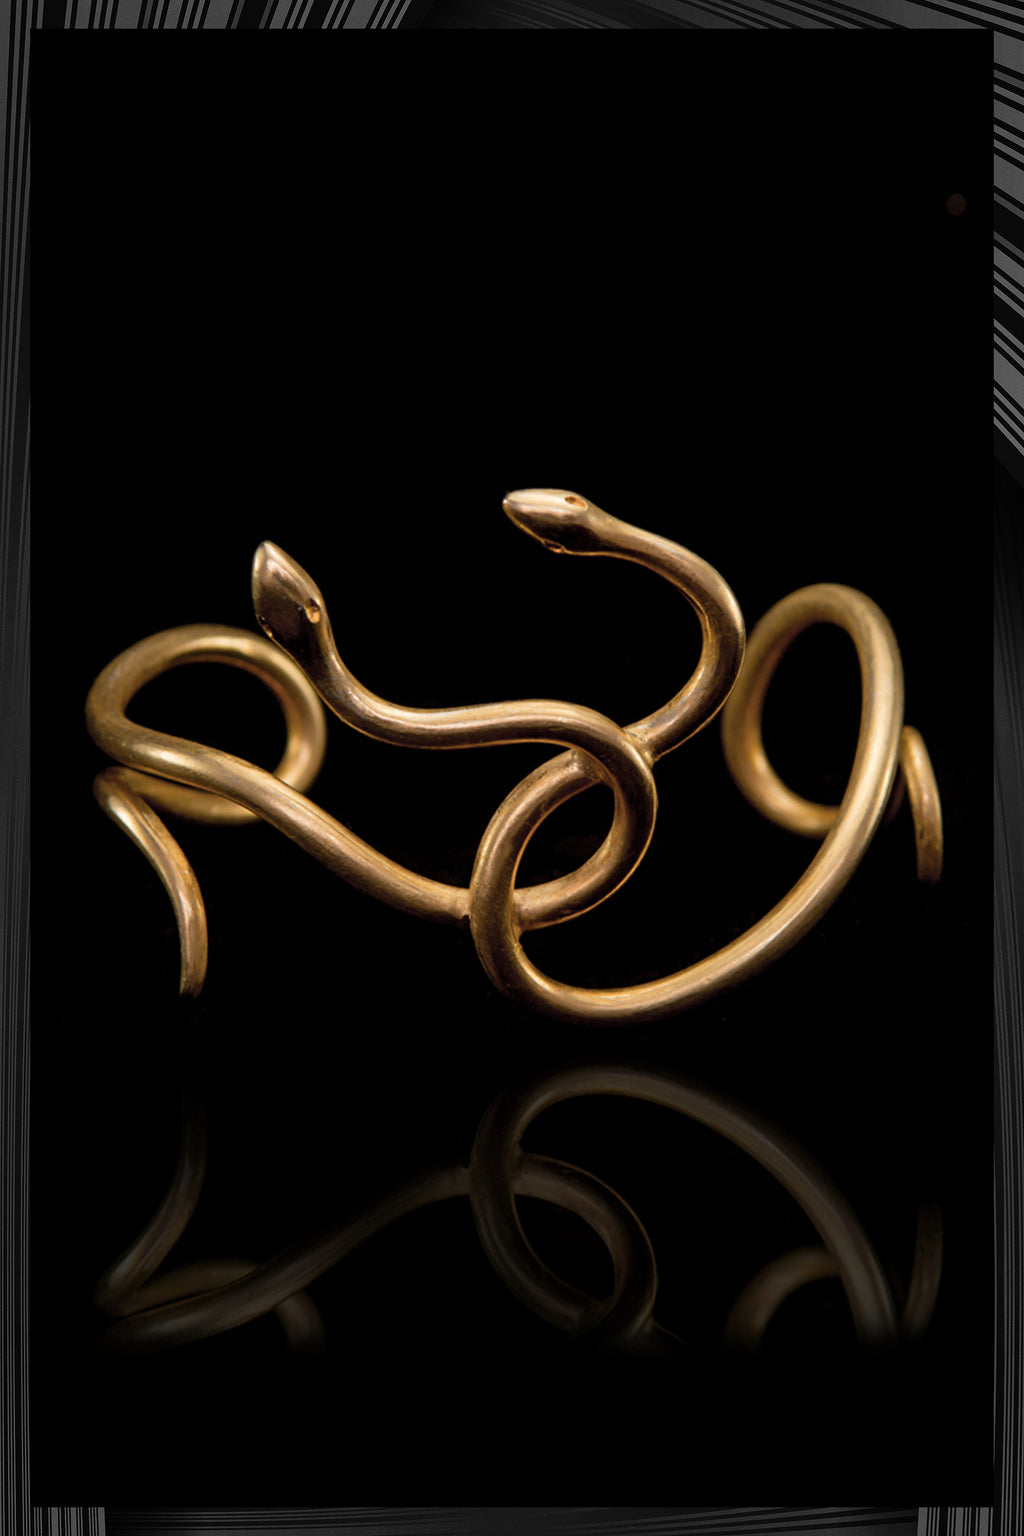 Two Snakes Bracelet | Free Delivery - Quick Shipping